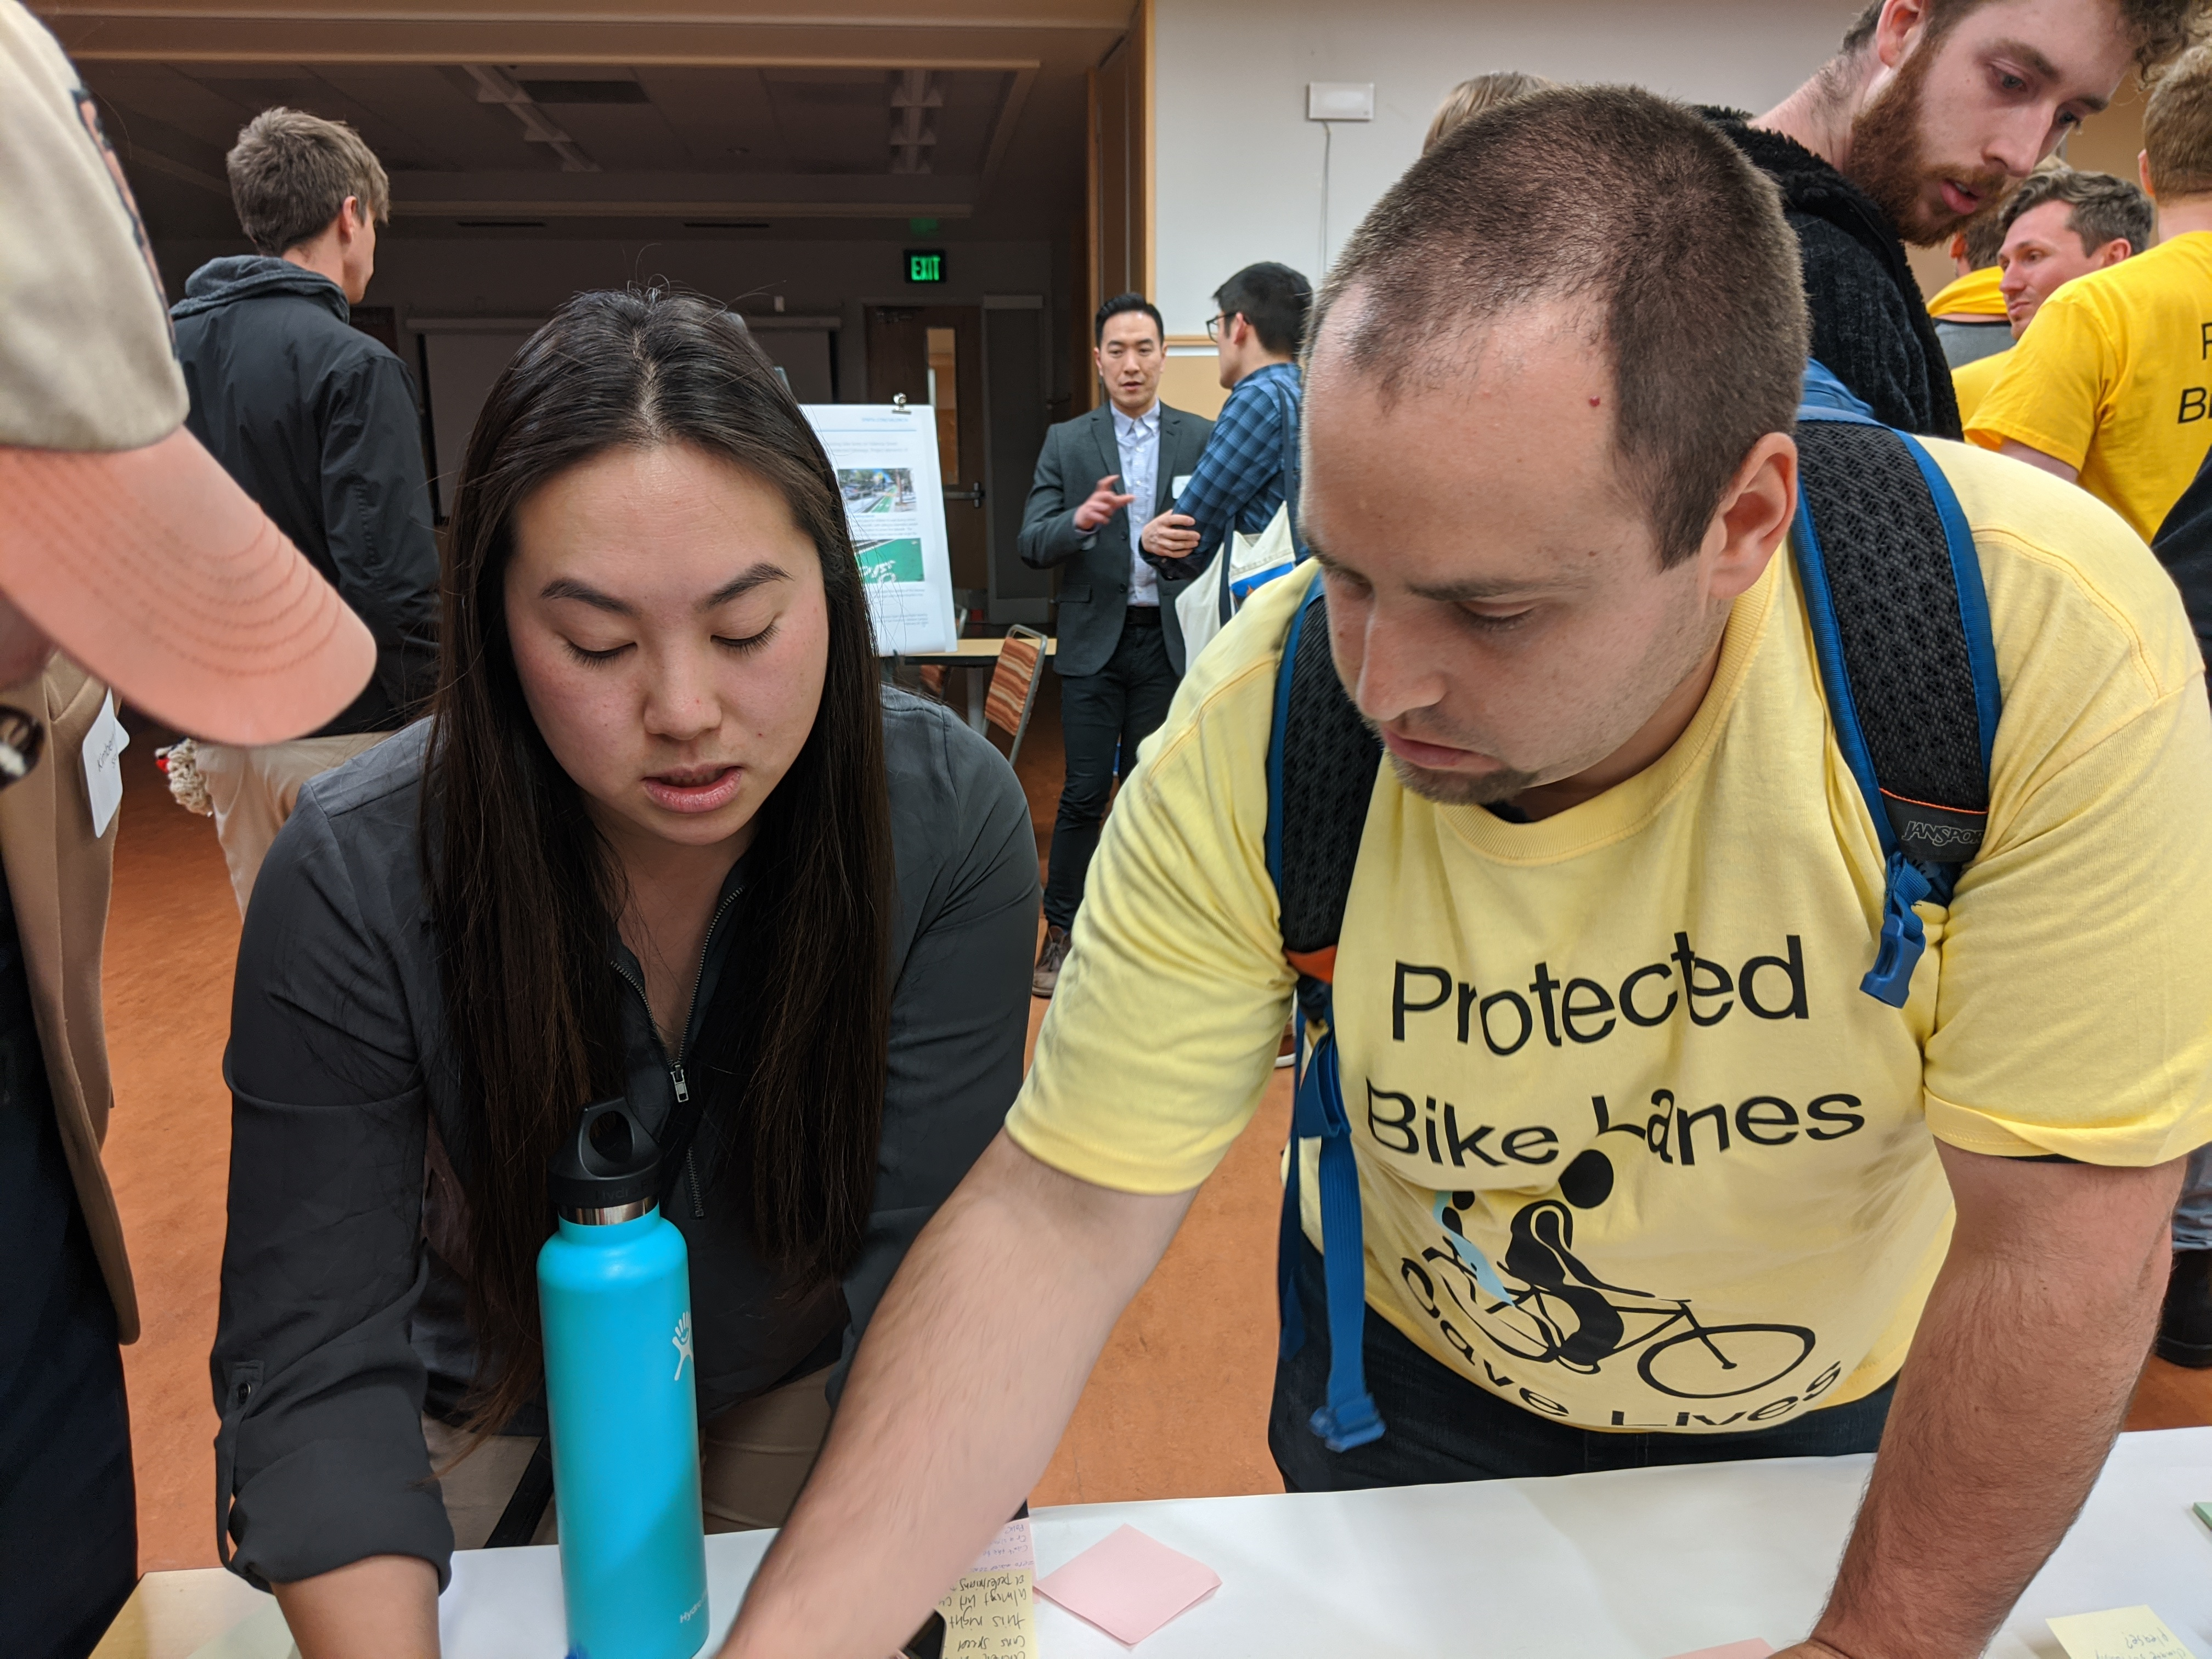 SFMTA engineer Winnie Lee and advocate Bruce Halperin discussing protected intersections at yesterday's open house. Photo: Streetsblog/Rudick